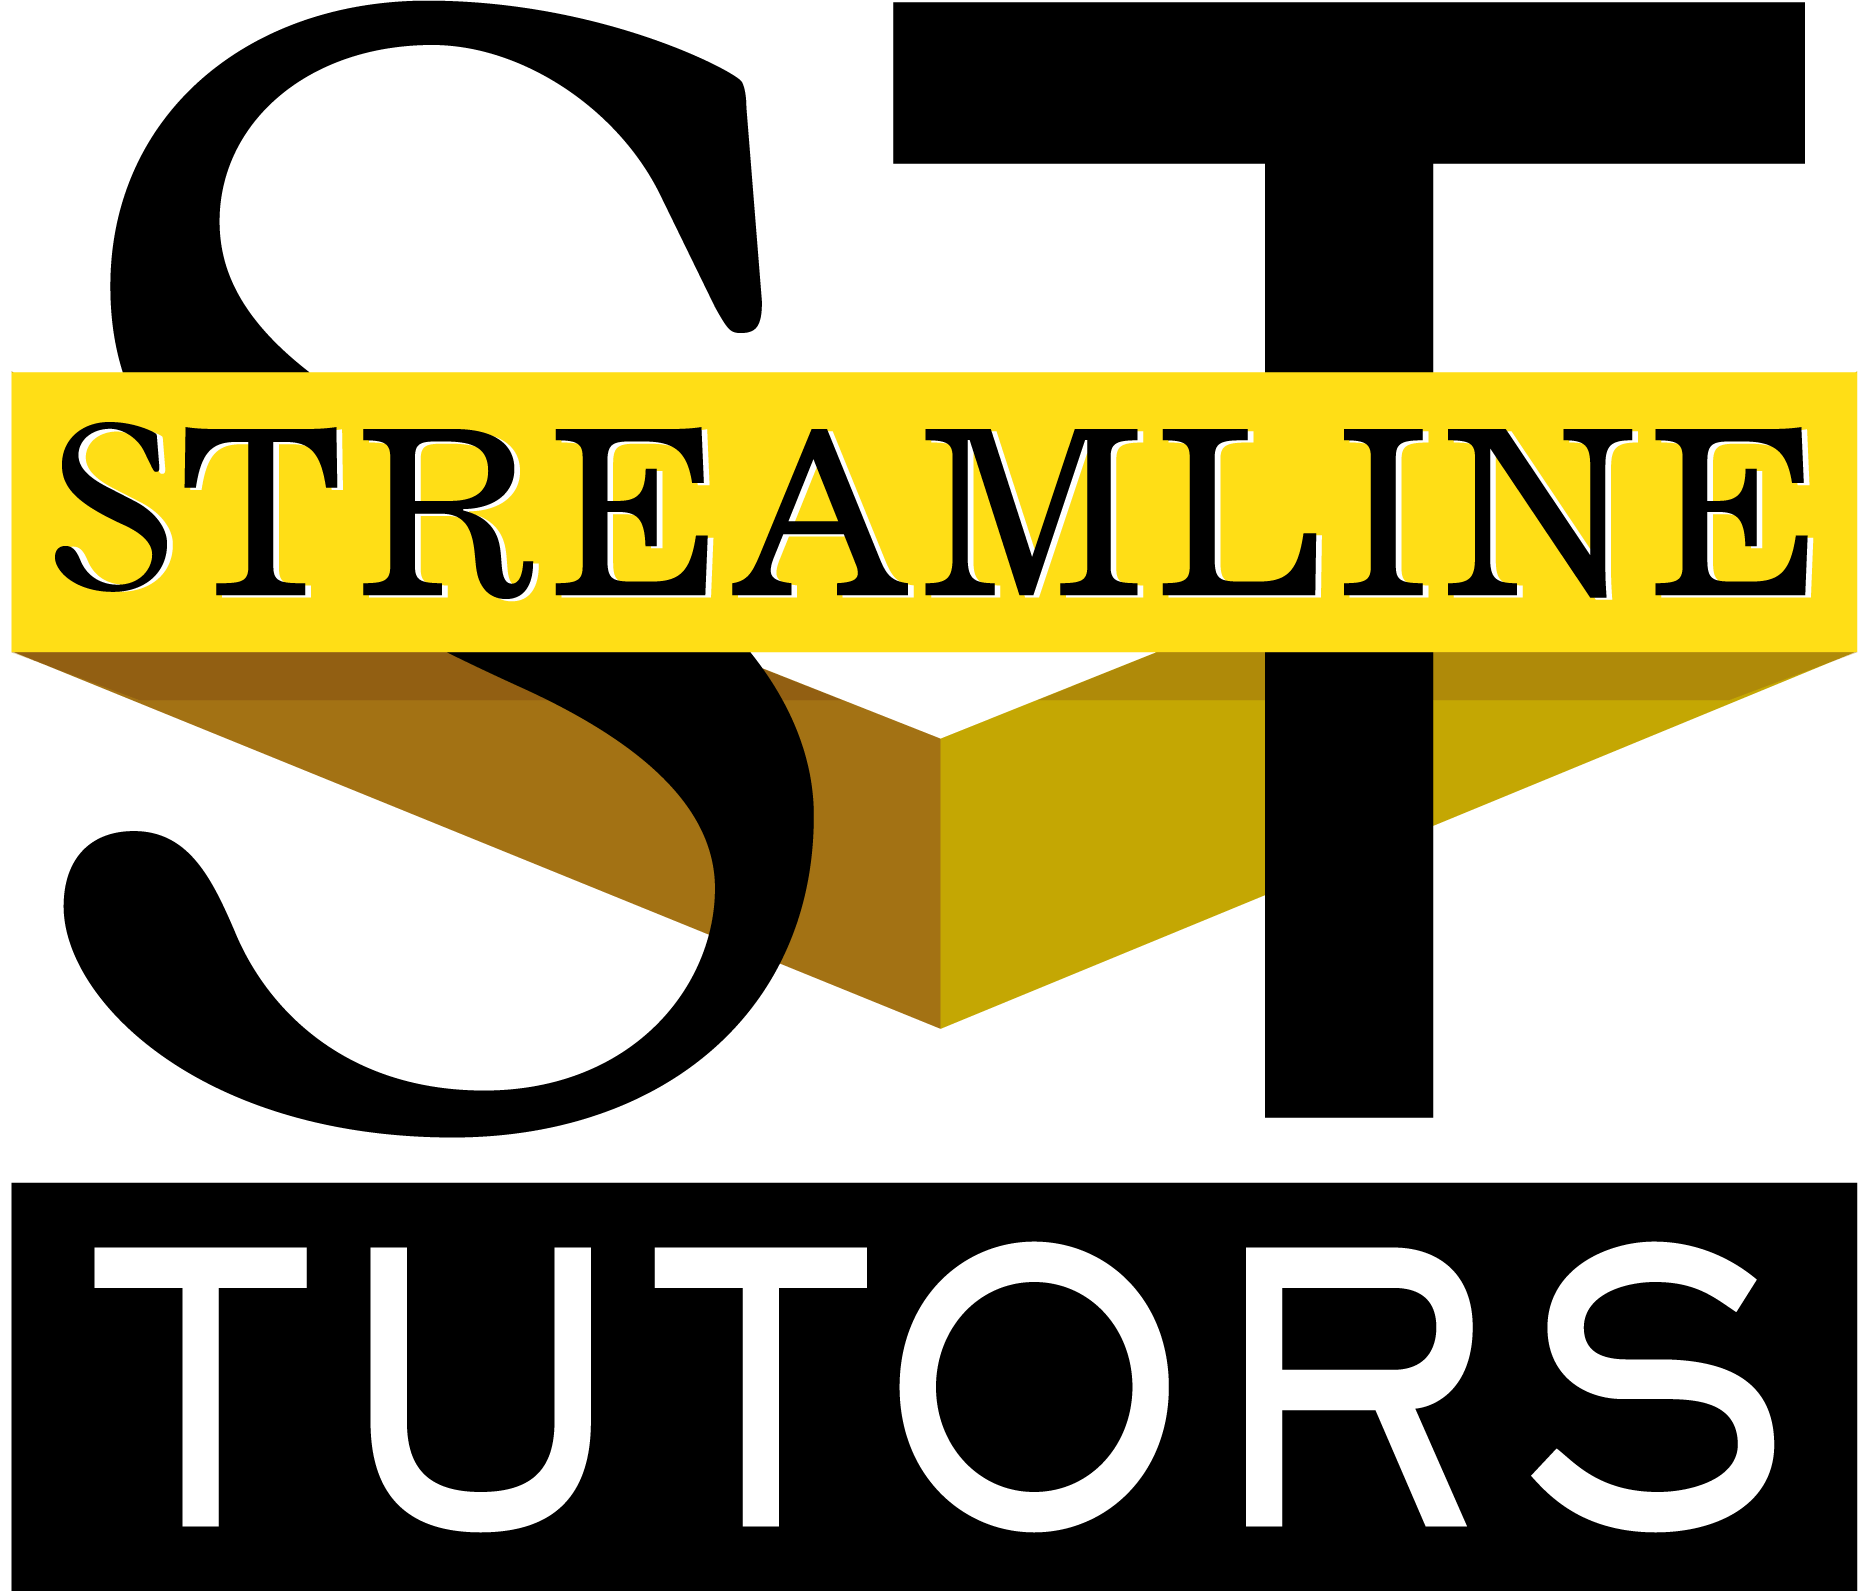 Streamline Tutors